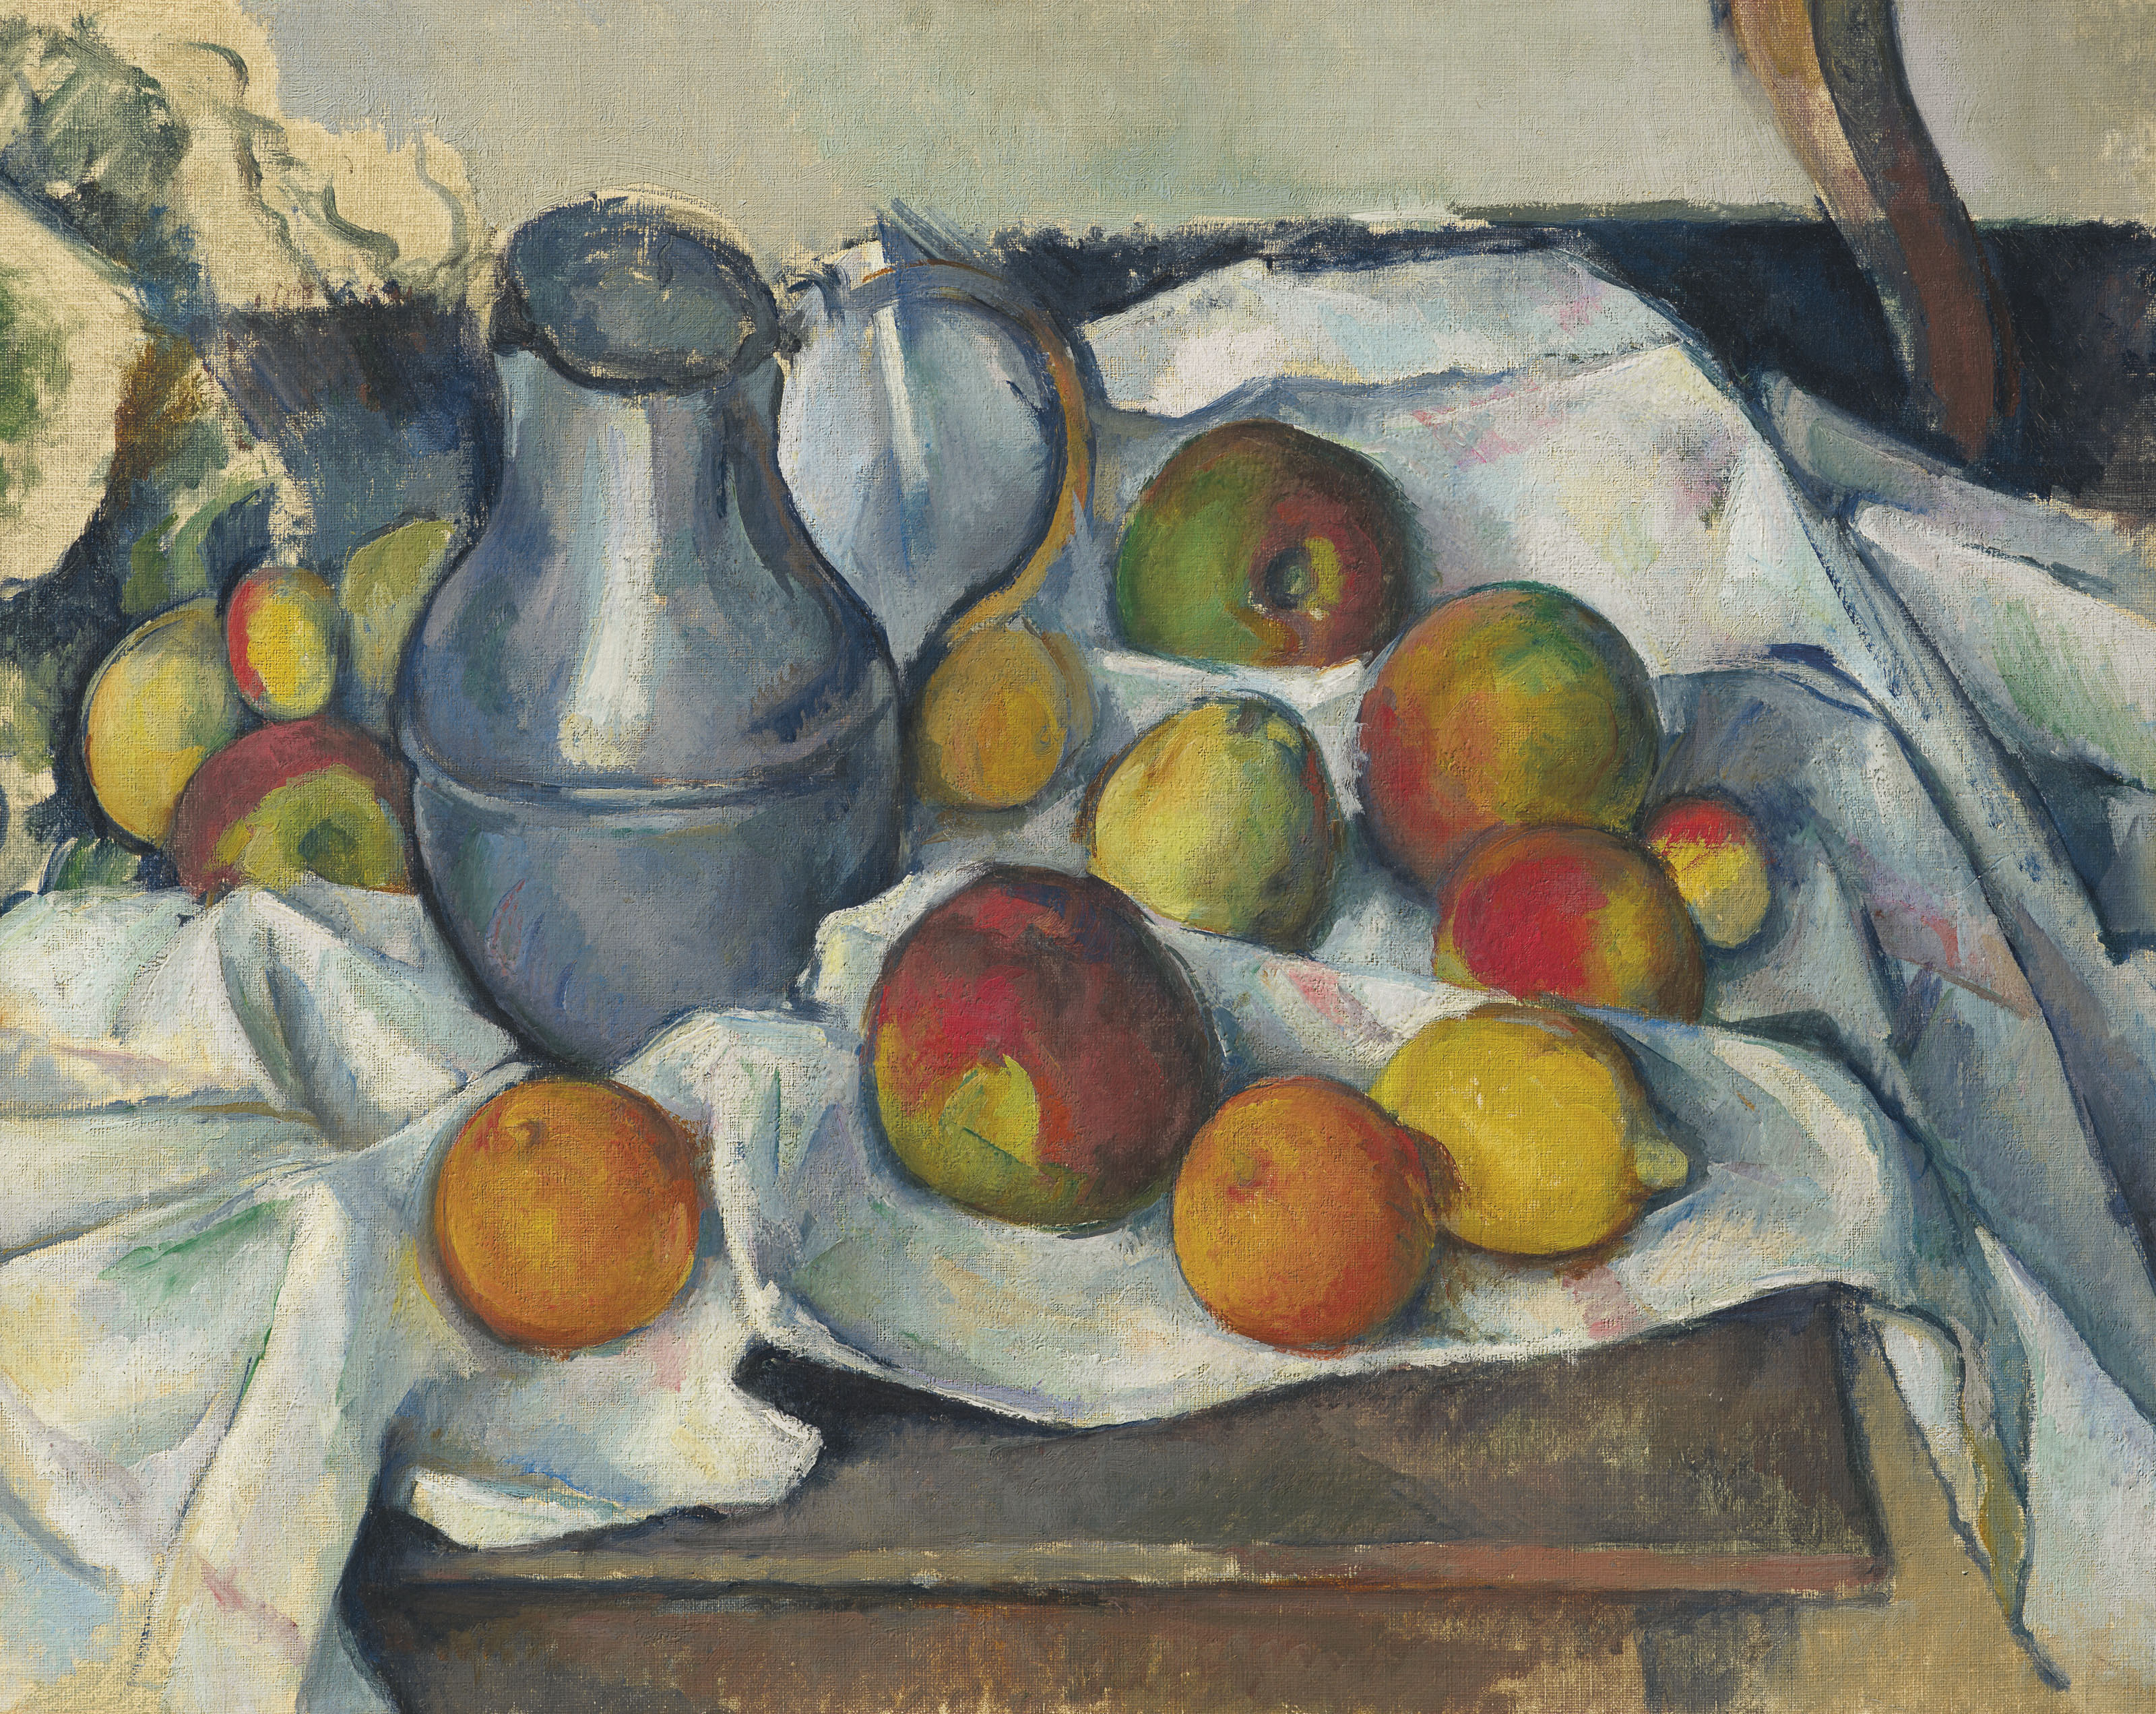 Paul Cézanne (1839-1906), Bouilloire et fruits, 1880-1890. Oil on canvas.19⅛ x 23⅝in (48.6 x 60 cm). Sold for $59,295,000 on 13 May 2019 at Christie's in New York